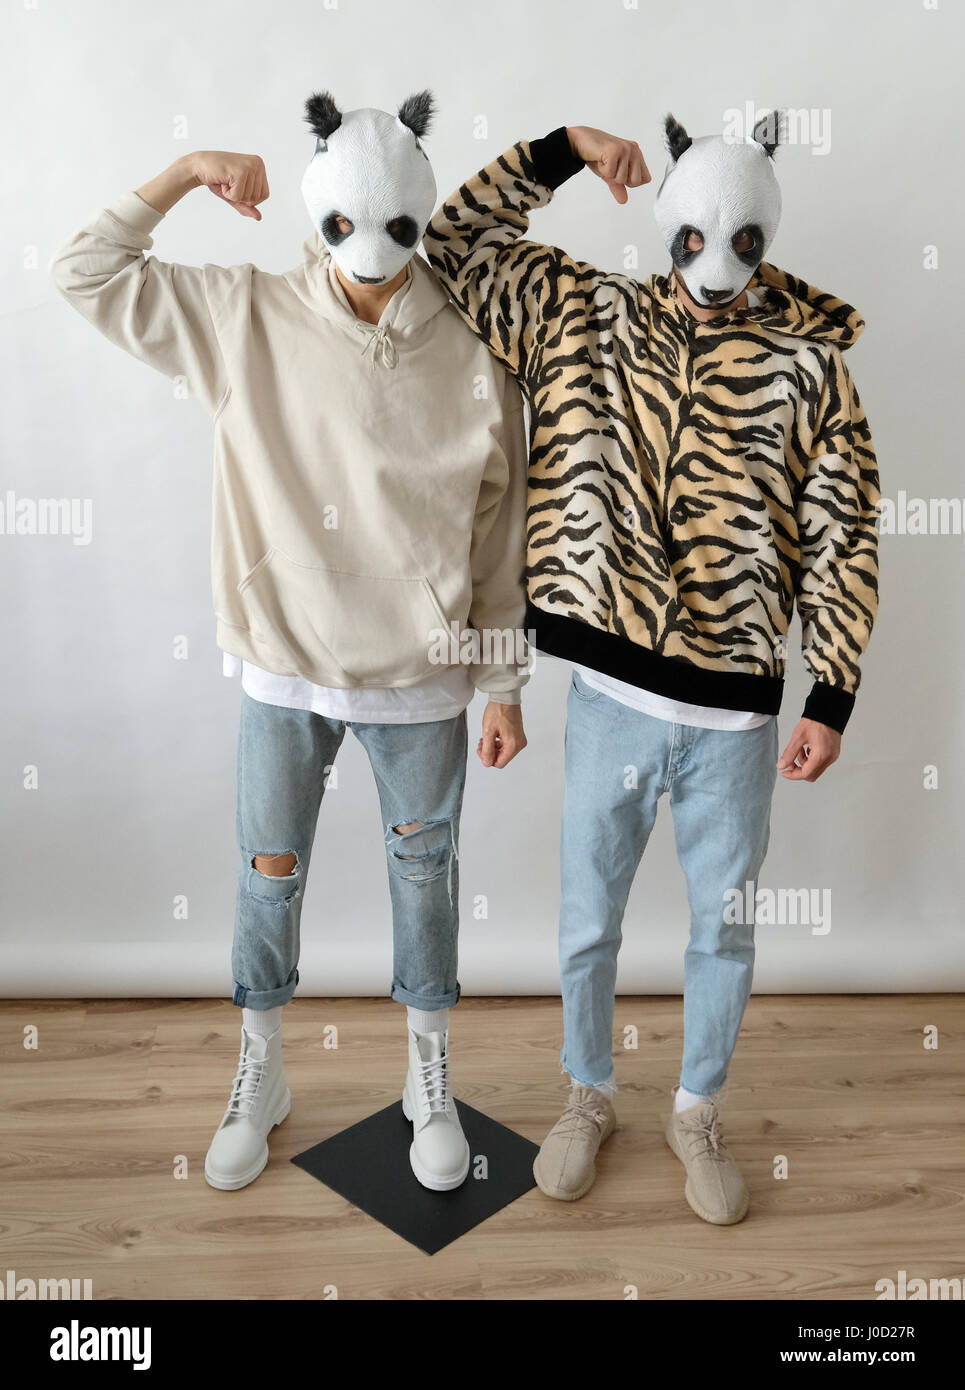 Stuttgart, Germany. 11th Apr, 2017. The rapper Cro, wearing a tiger print sweater and a mask, with a wax likeness - Stock Image